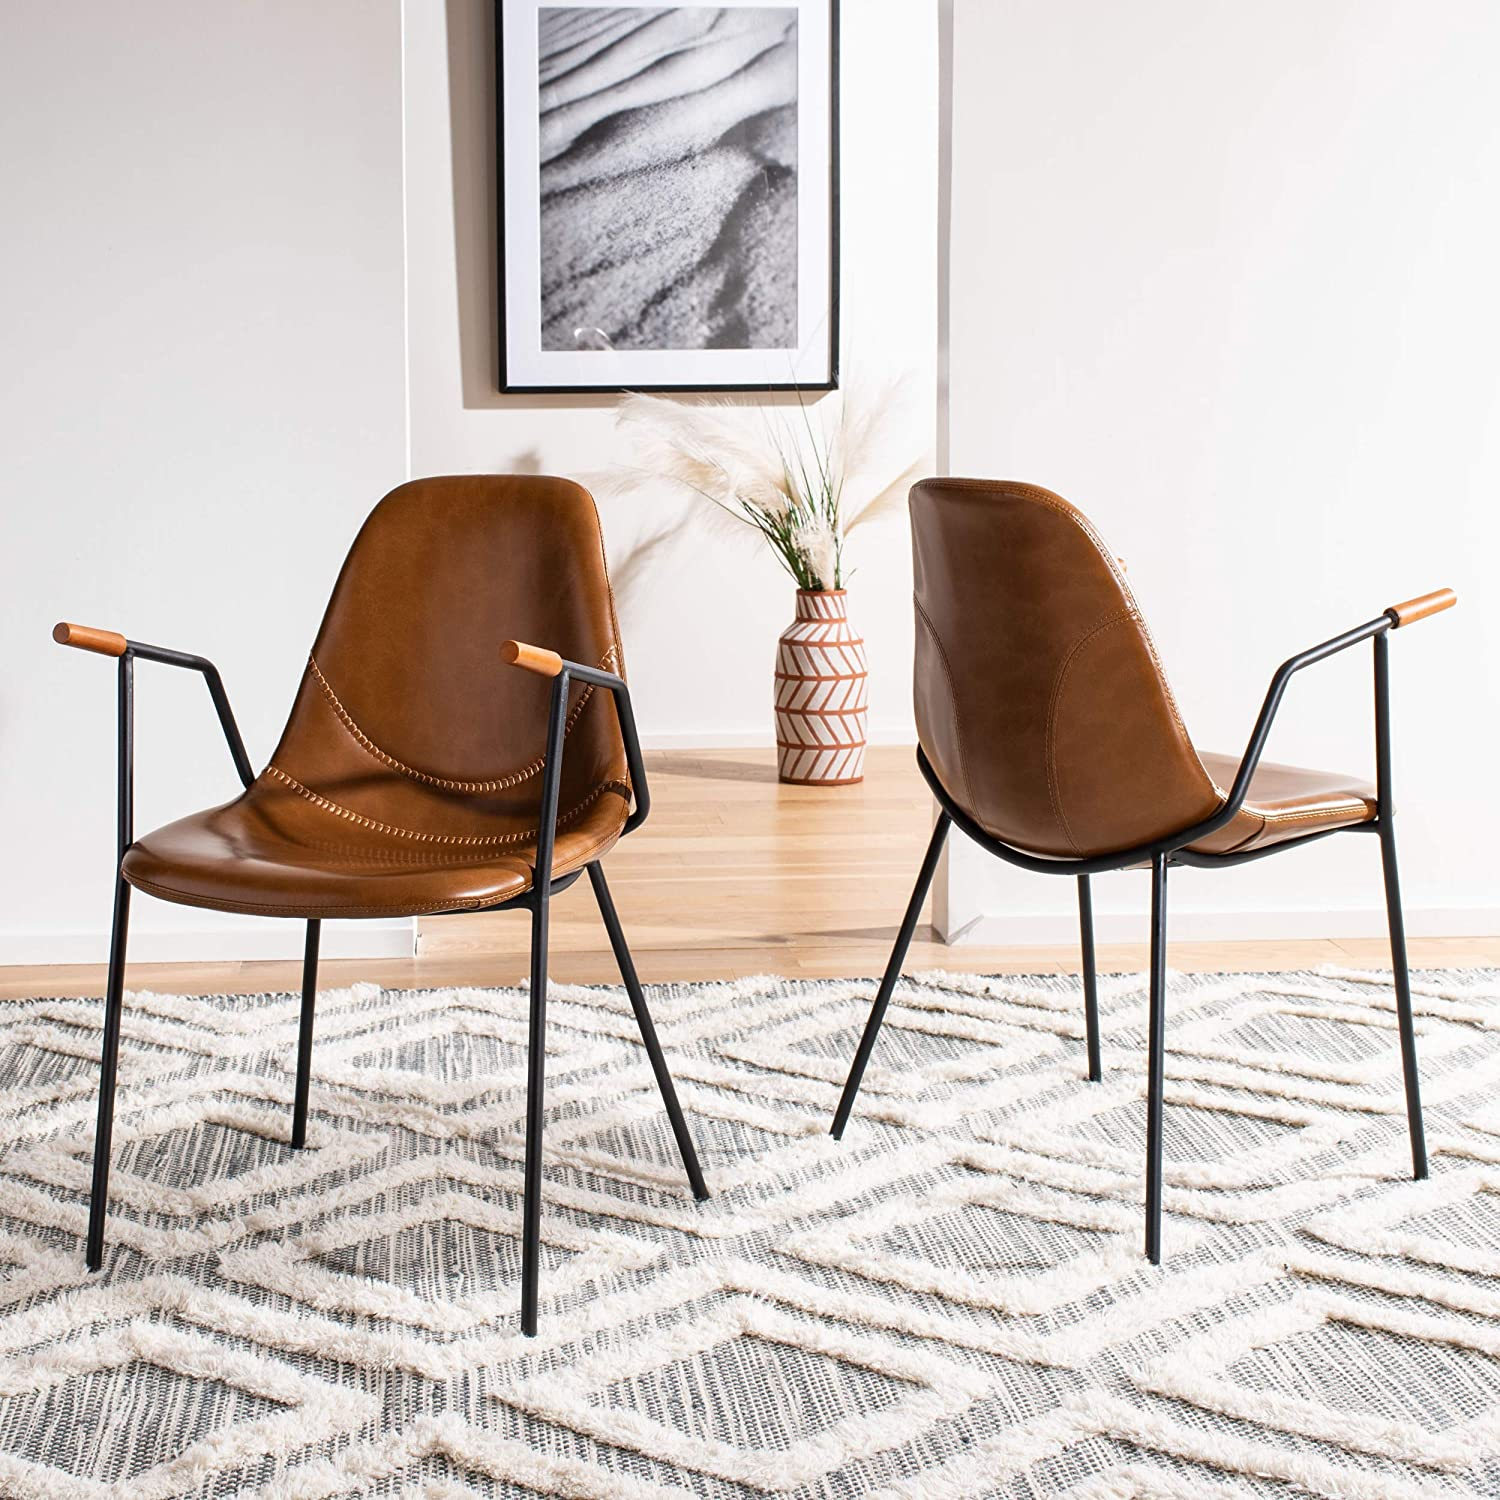 Safavieh Home Tanner Mid-Century Cognac Faux Leather and Black Dining Chair, Set of 2